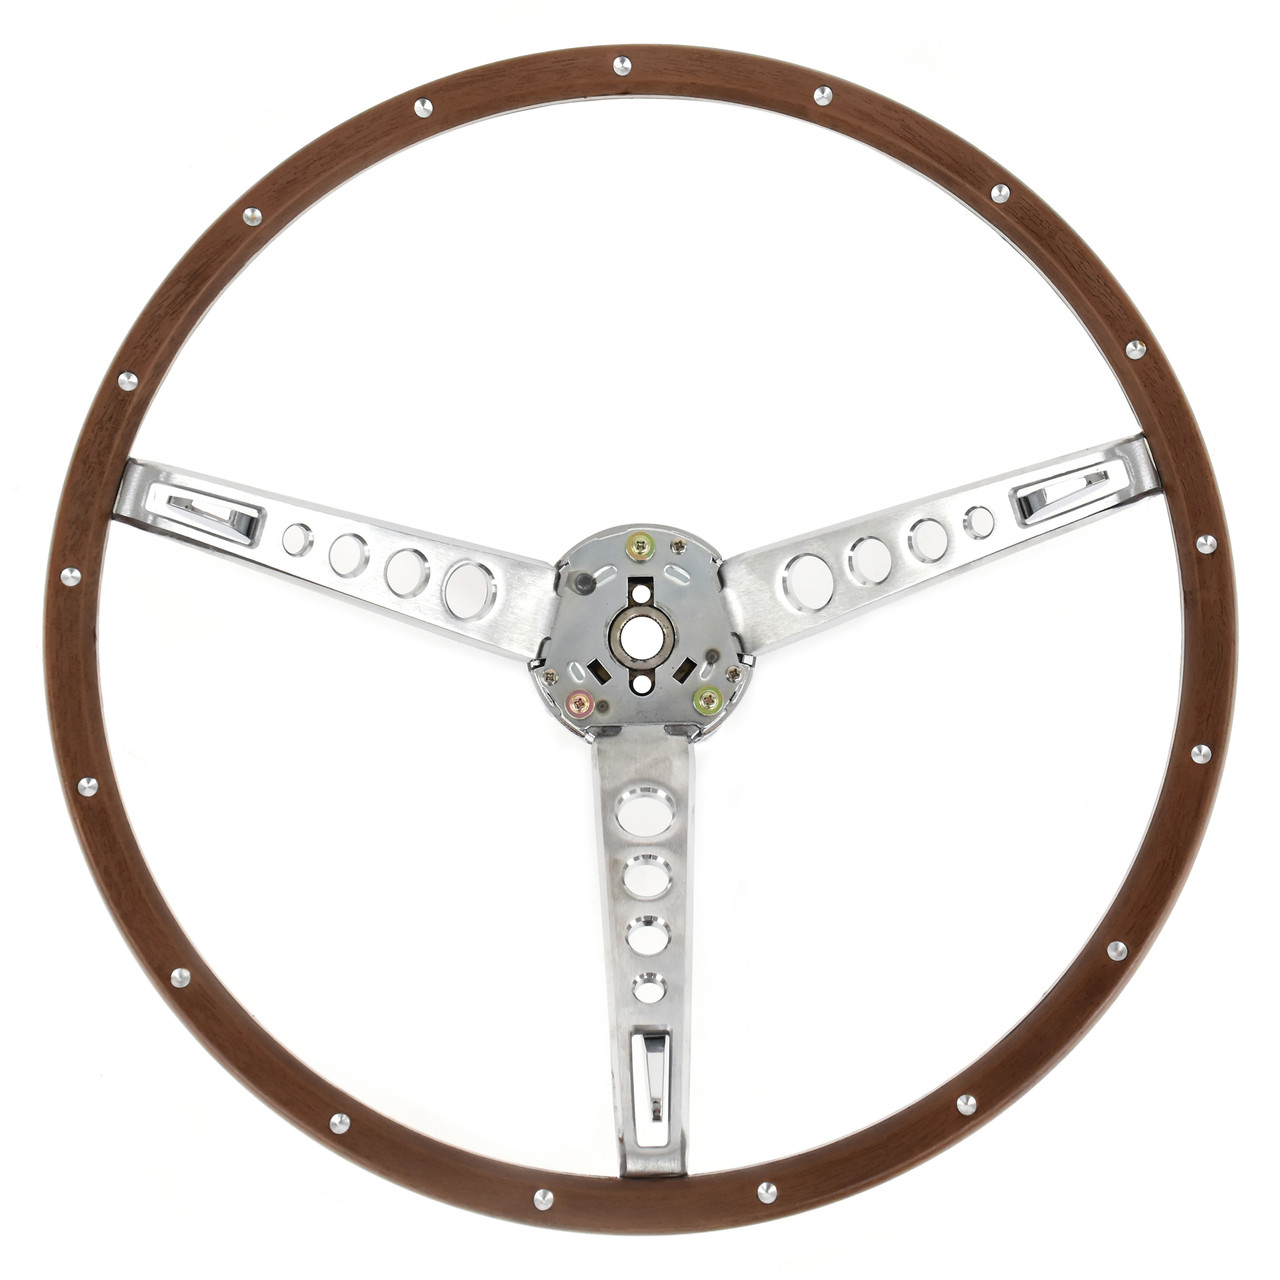 eClassics 1965-1966 Ford Mustang Steering Wheel Assembly Deluxe Woodgrain